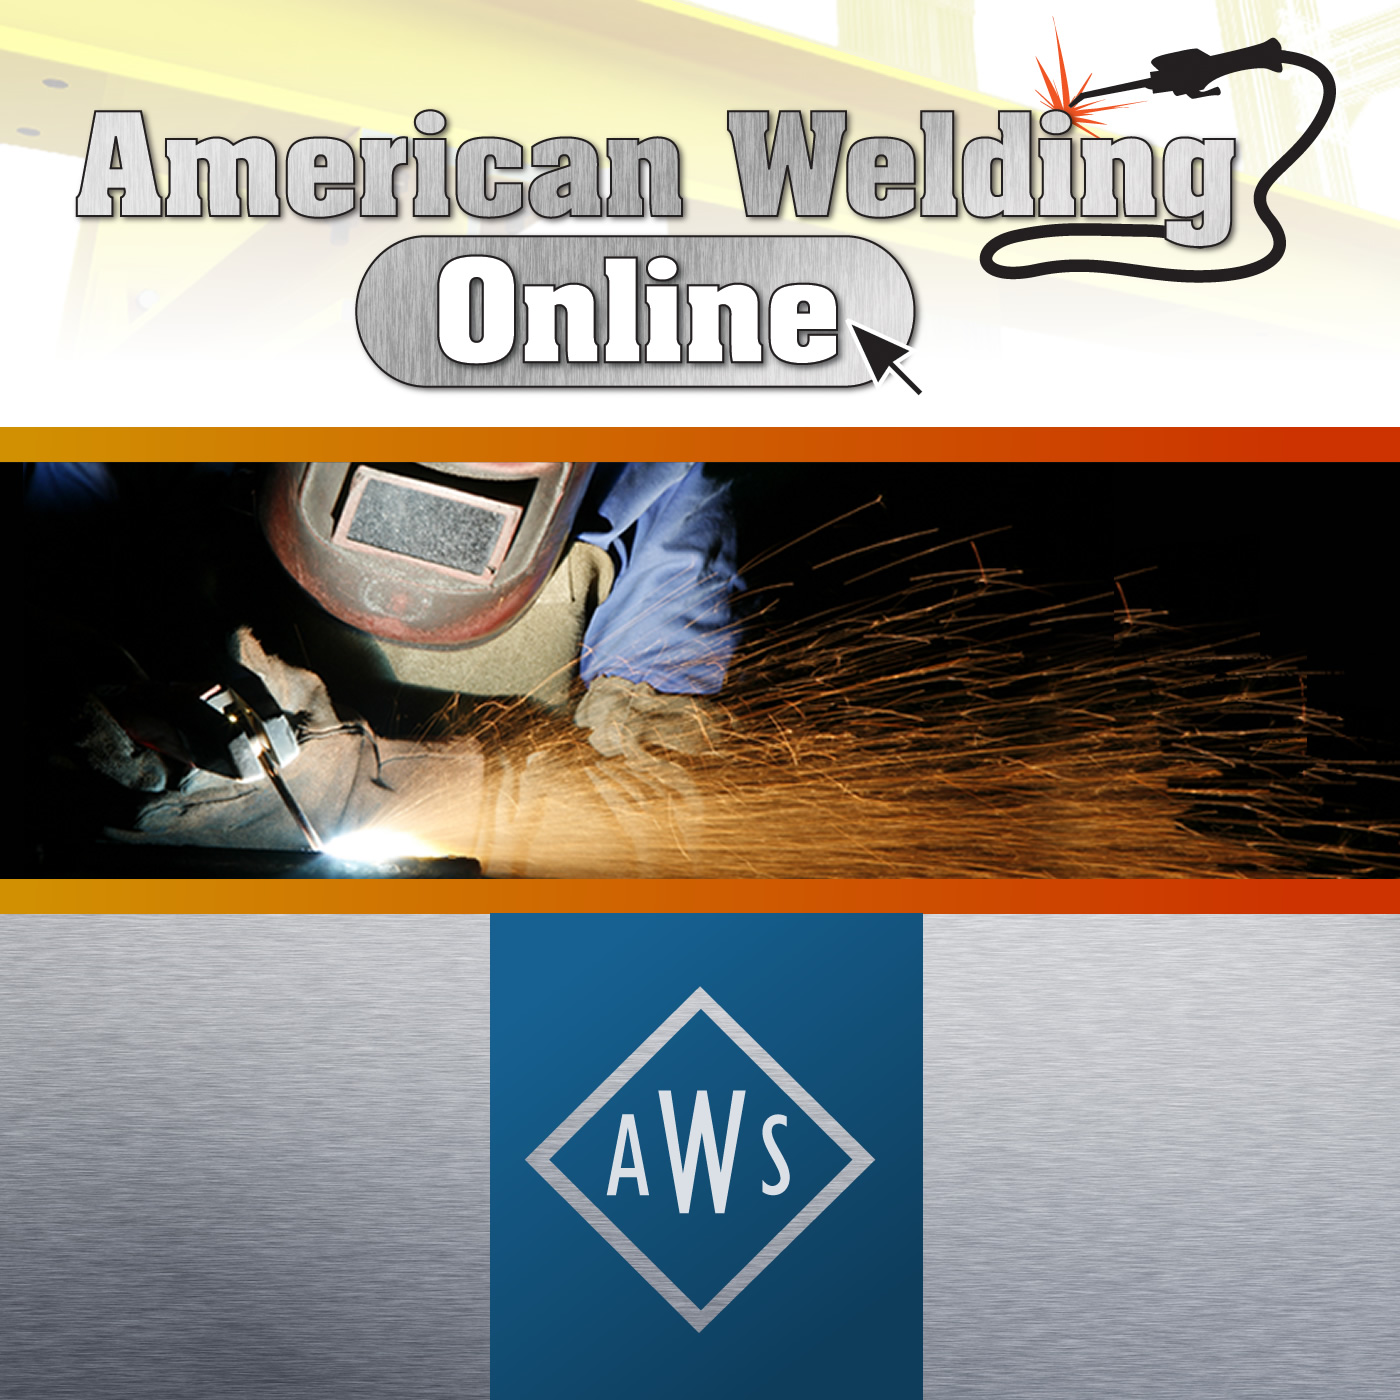 American Welding Society Education Online